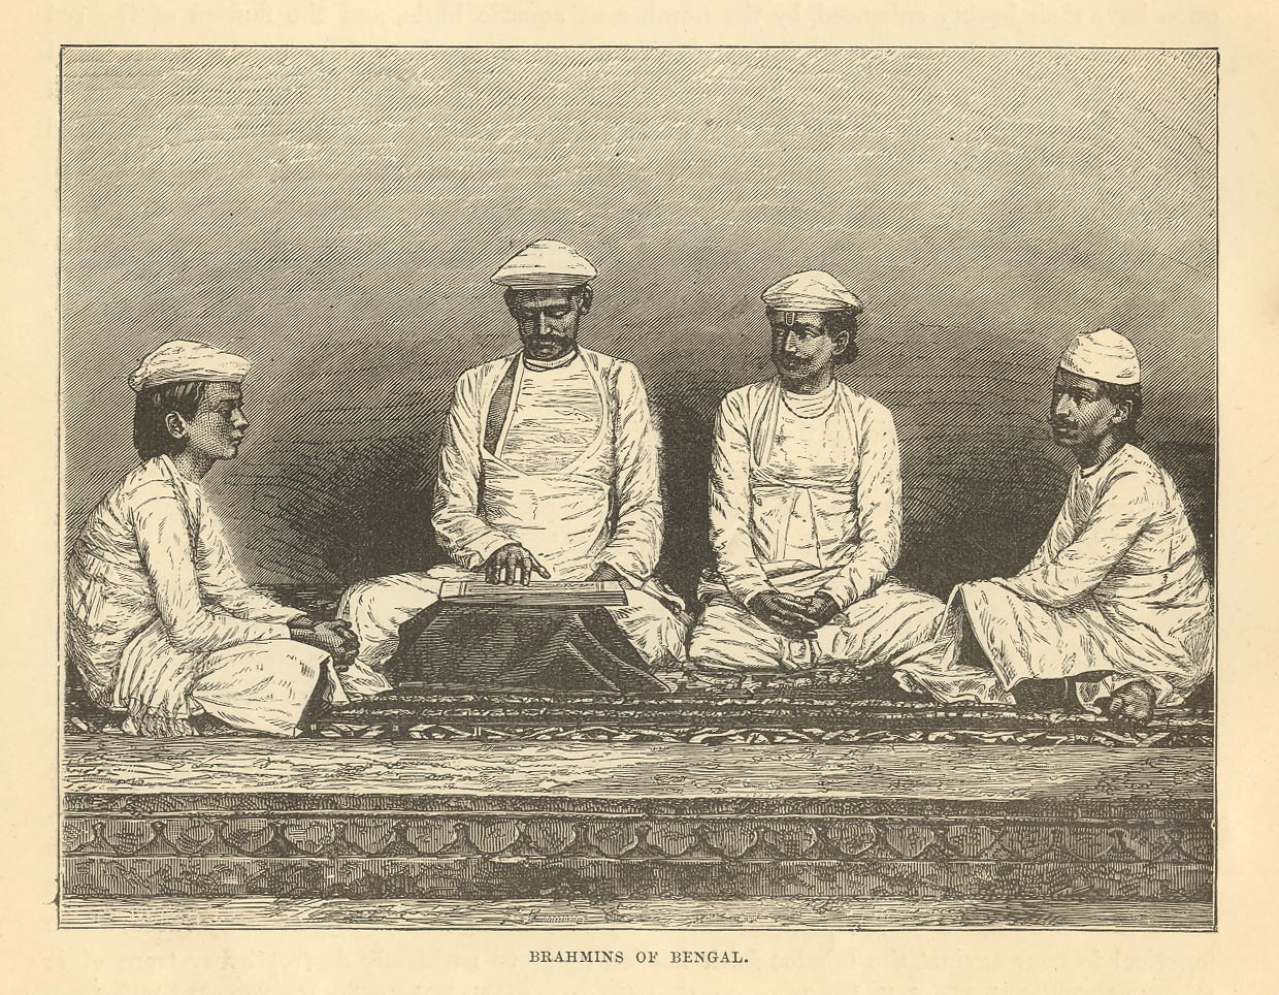 """Brahmins of Bengal,"" from 'The World: its Cities and Peoples', by W. W. Birdsall, 1892 (Wikimedia Commons)"